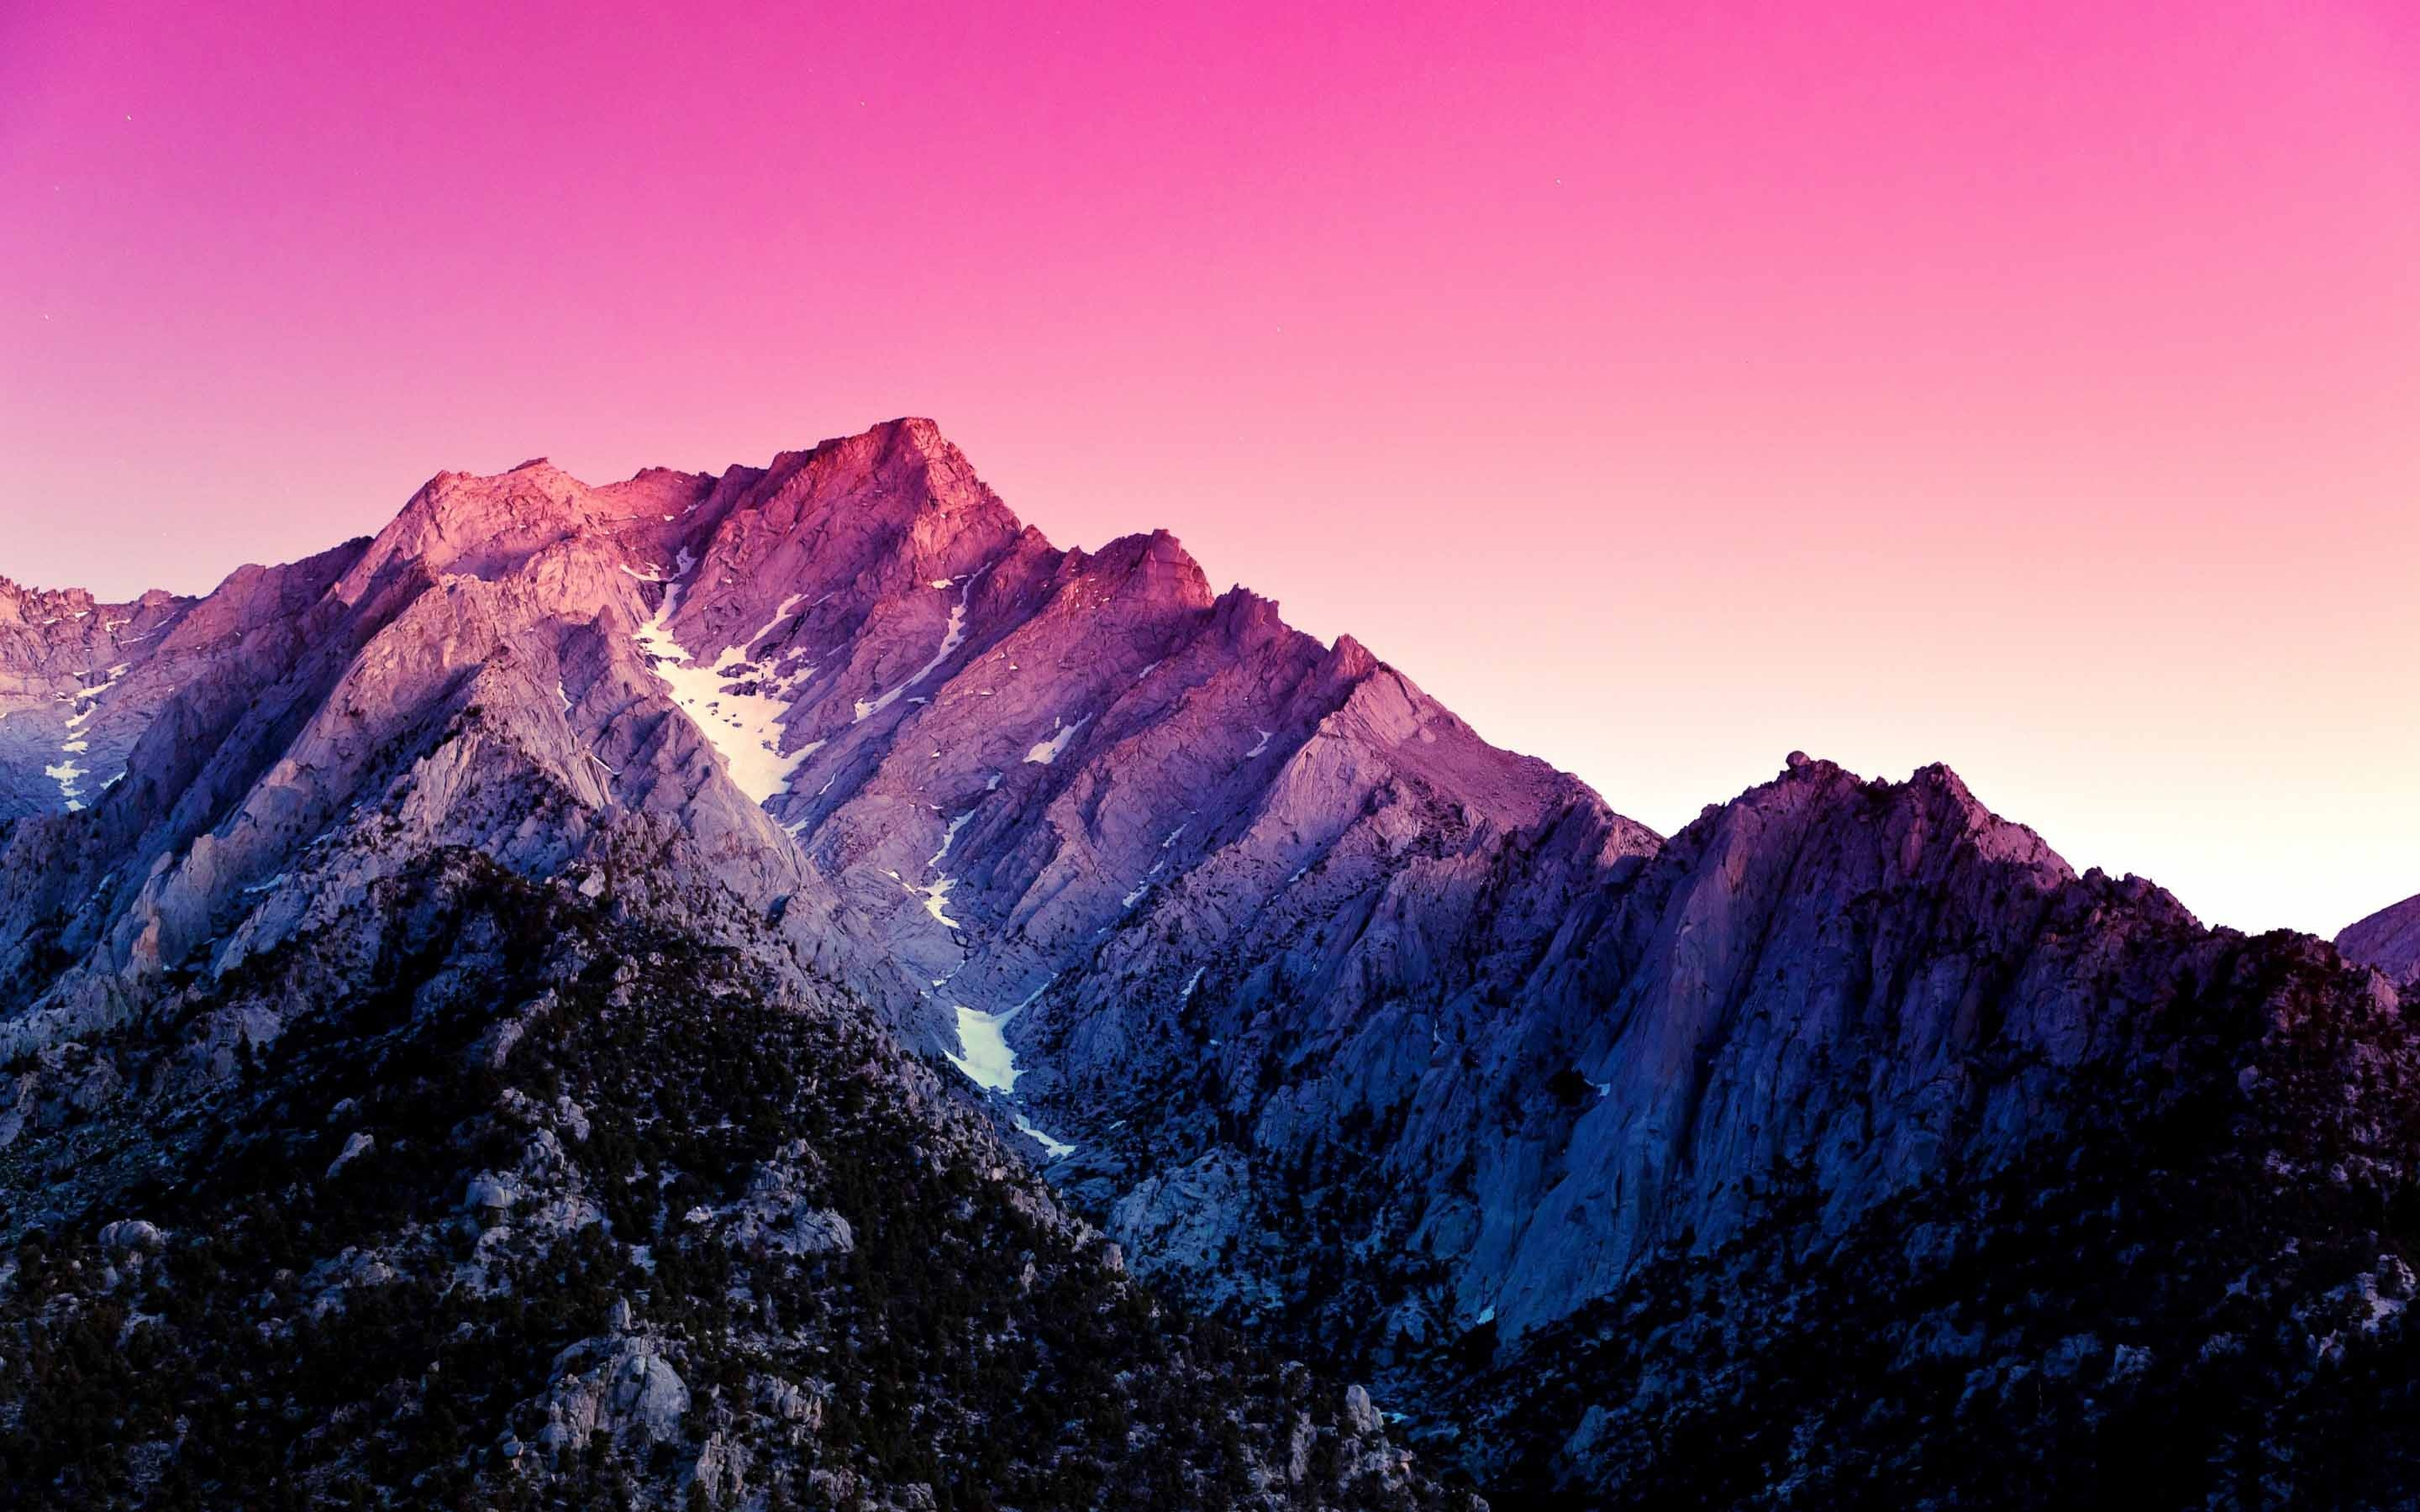 Wild Mountain Mac Wallpaper Download | Free Mac Wallpapers ...